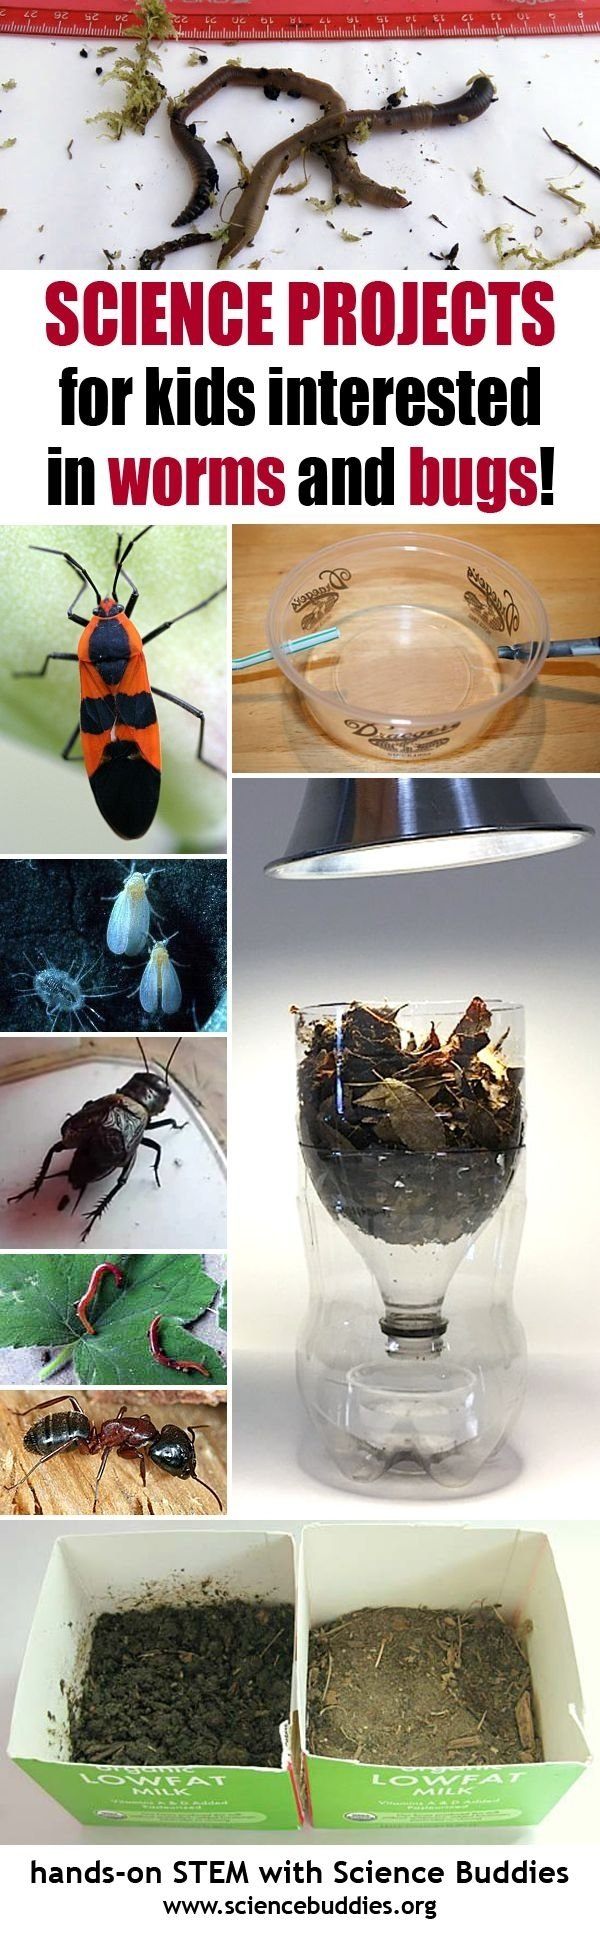 10 Pretty Science Buddies Science Fair Ideas 727 best k 12 science project ideas images on pinterest lesson 2020